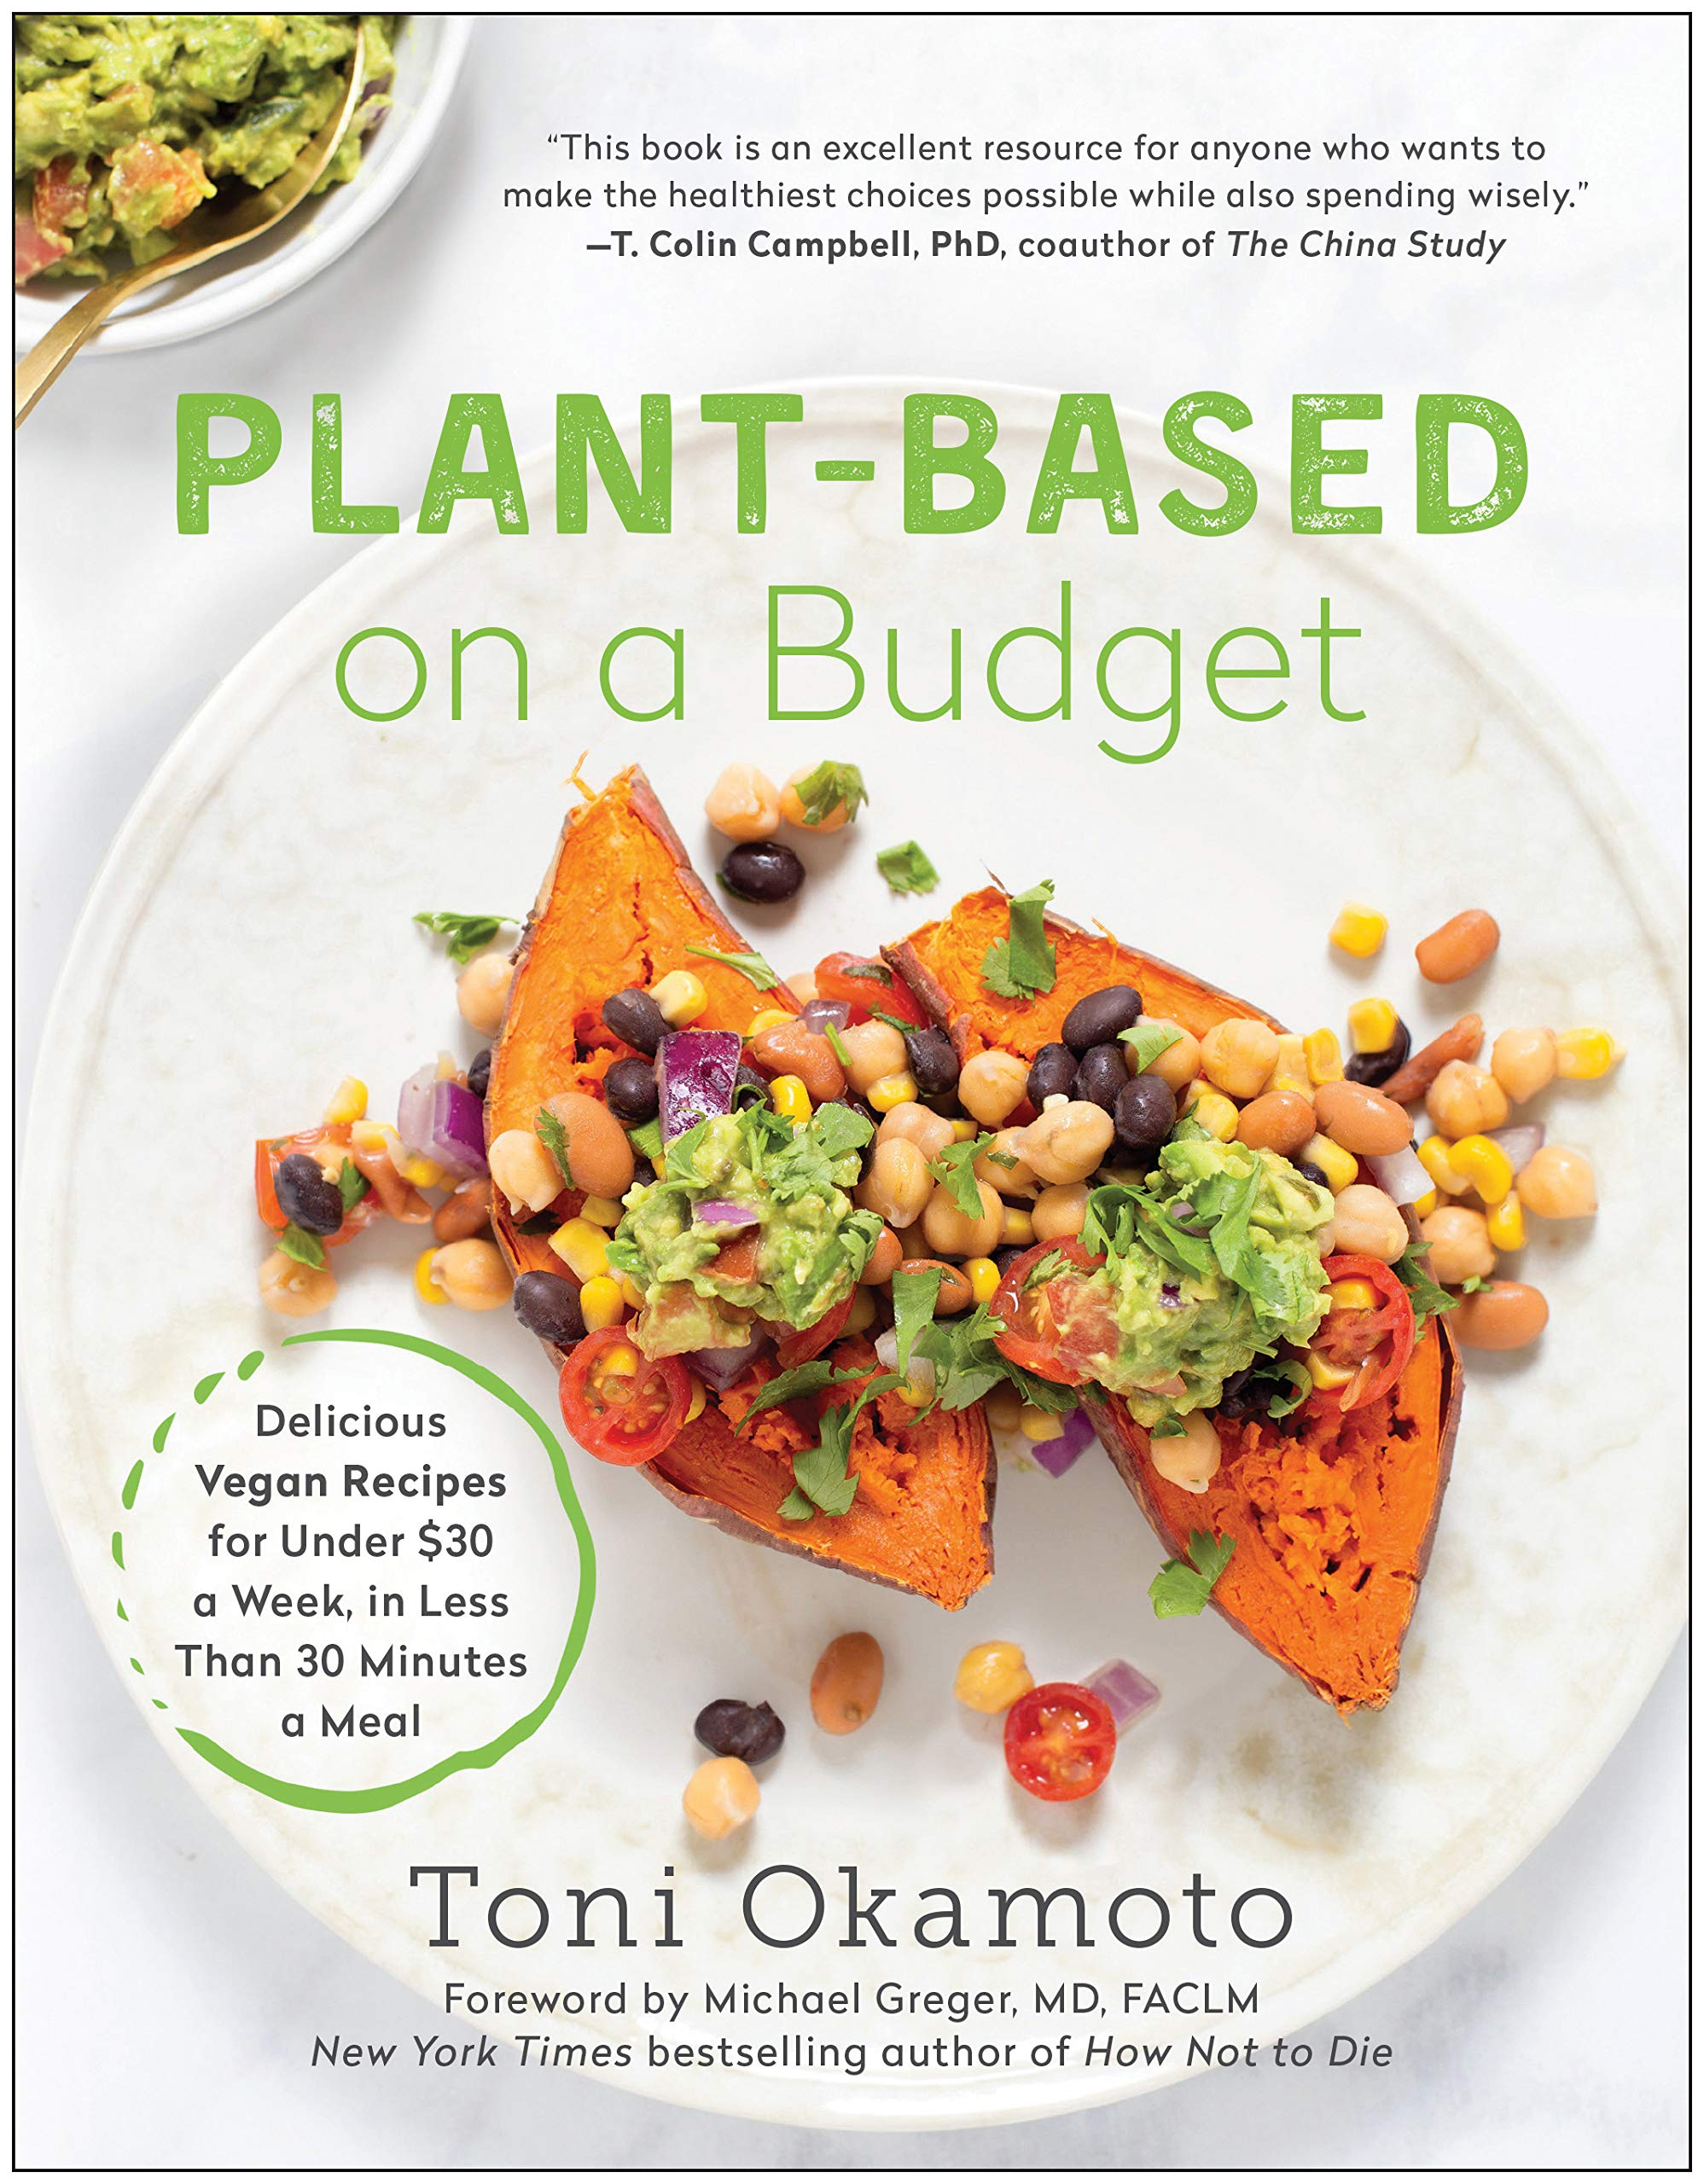 Plant-Based on a Budget: Delicious Vegan Recipes for Under $30 a Week, in Less  Than 30 Minutes a Meal: Okamoto, Toni, Michael Greger, MD FACLM:  9781946885982: Amazon.com: Books